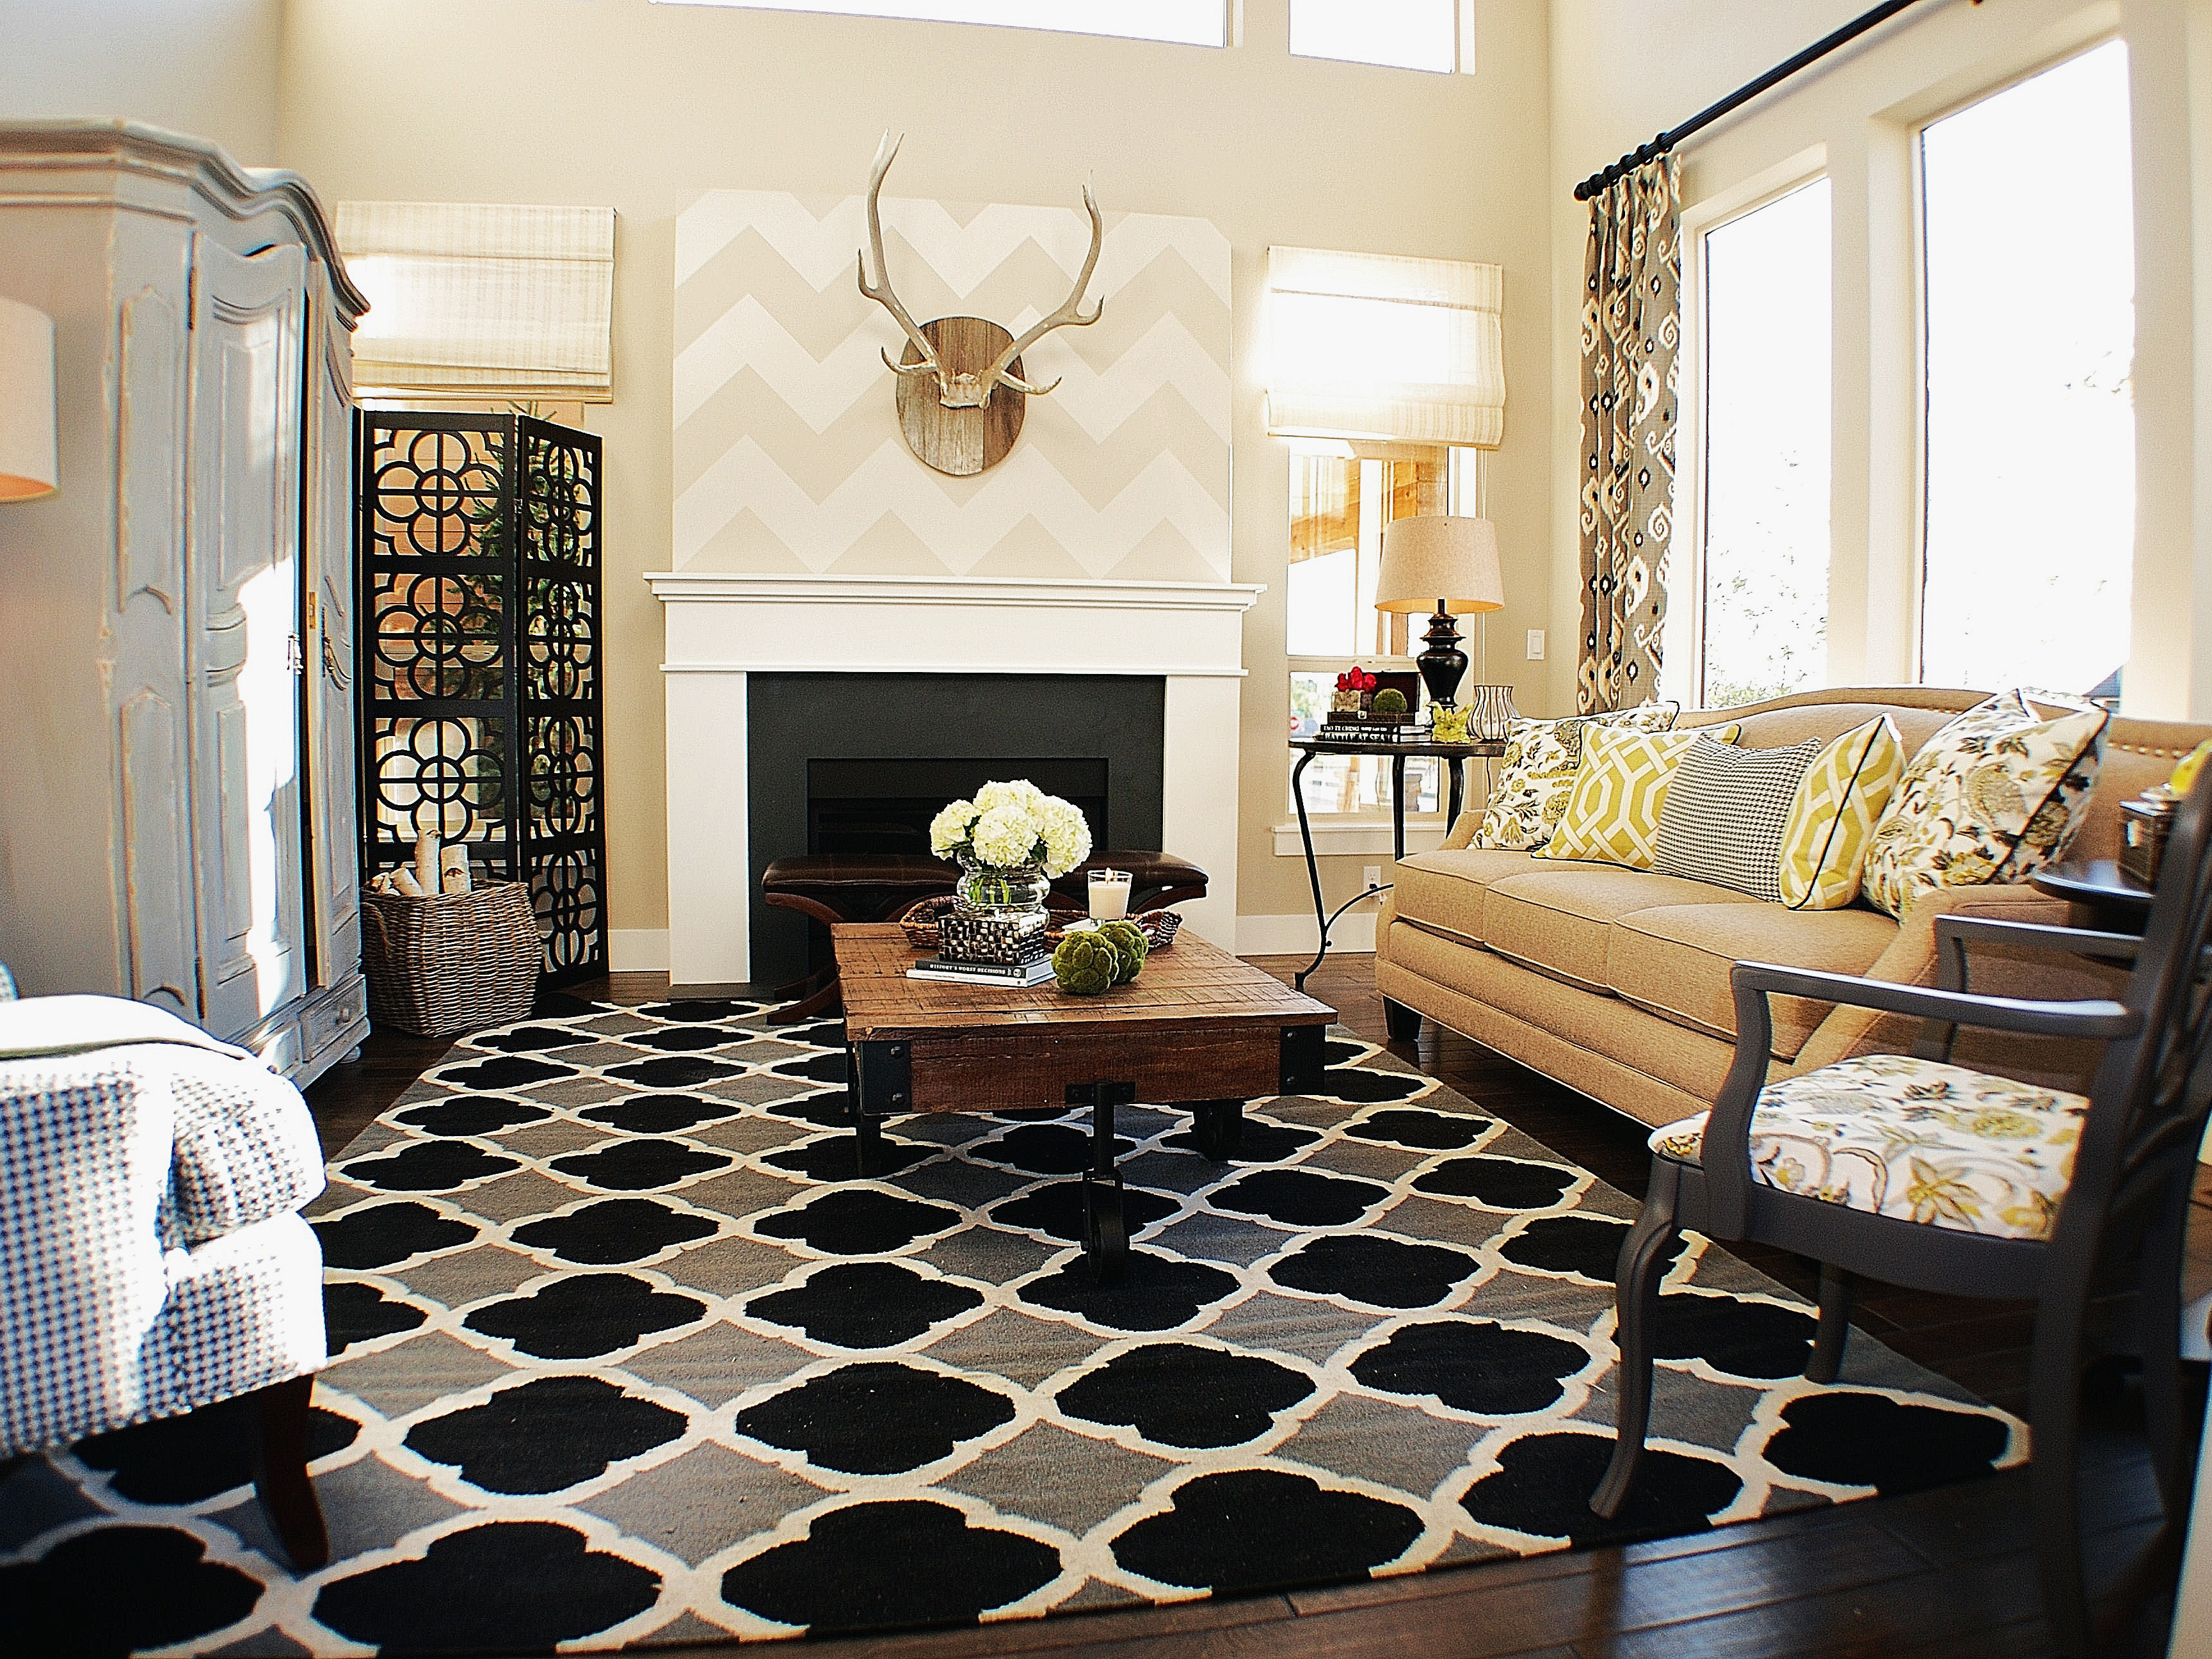 Moroccan Inspired Living Room With With Black And Yellow Accents (View 16 of 25)